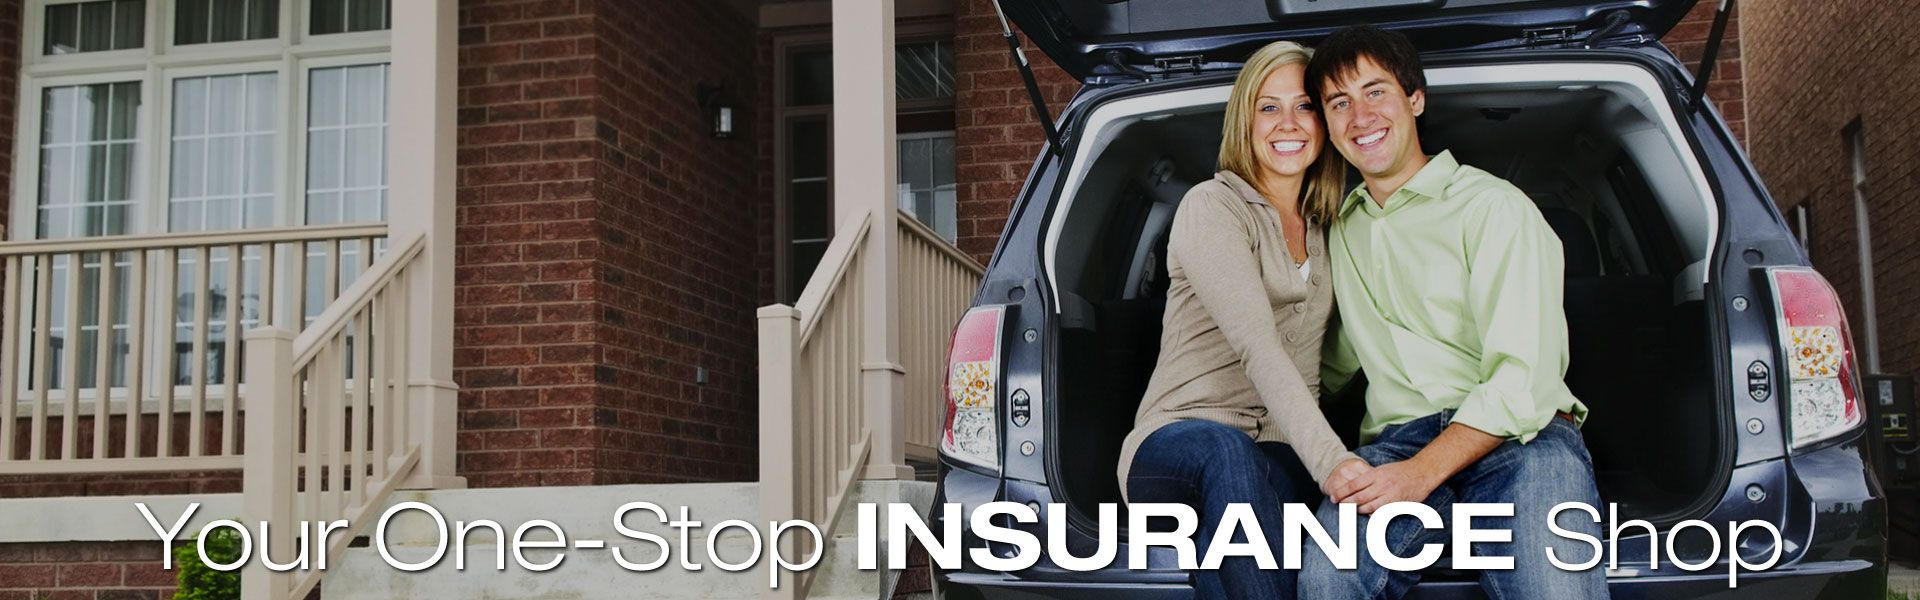 Your One-Stop Insurance Shop | Young couple with car in front of home